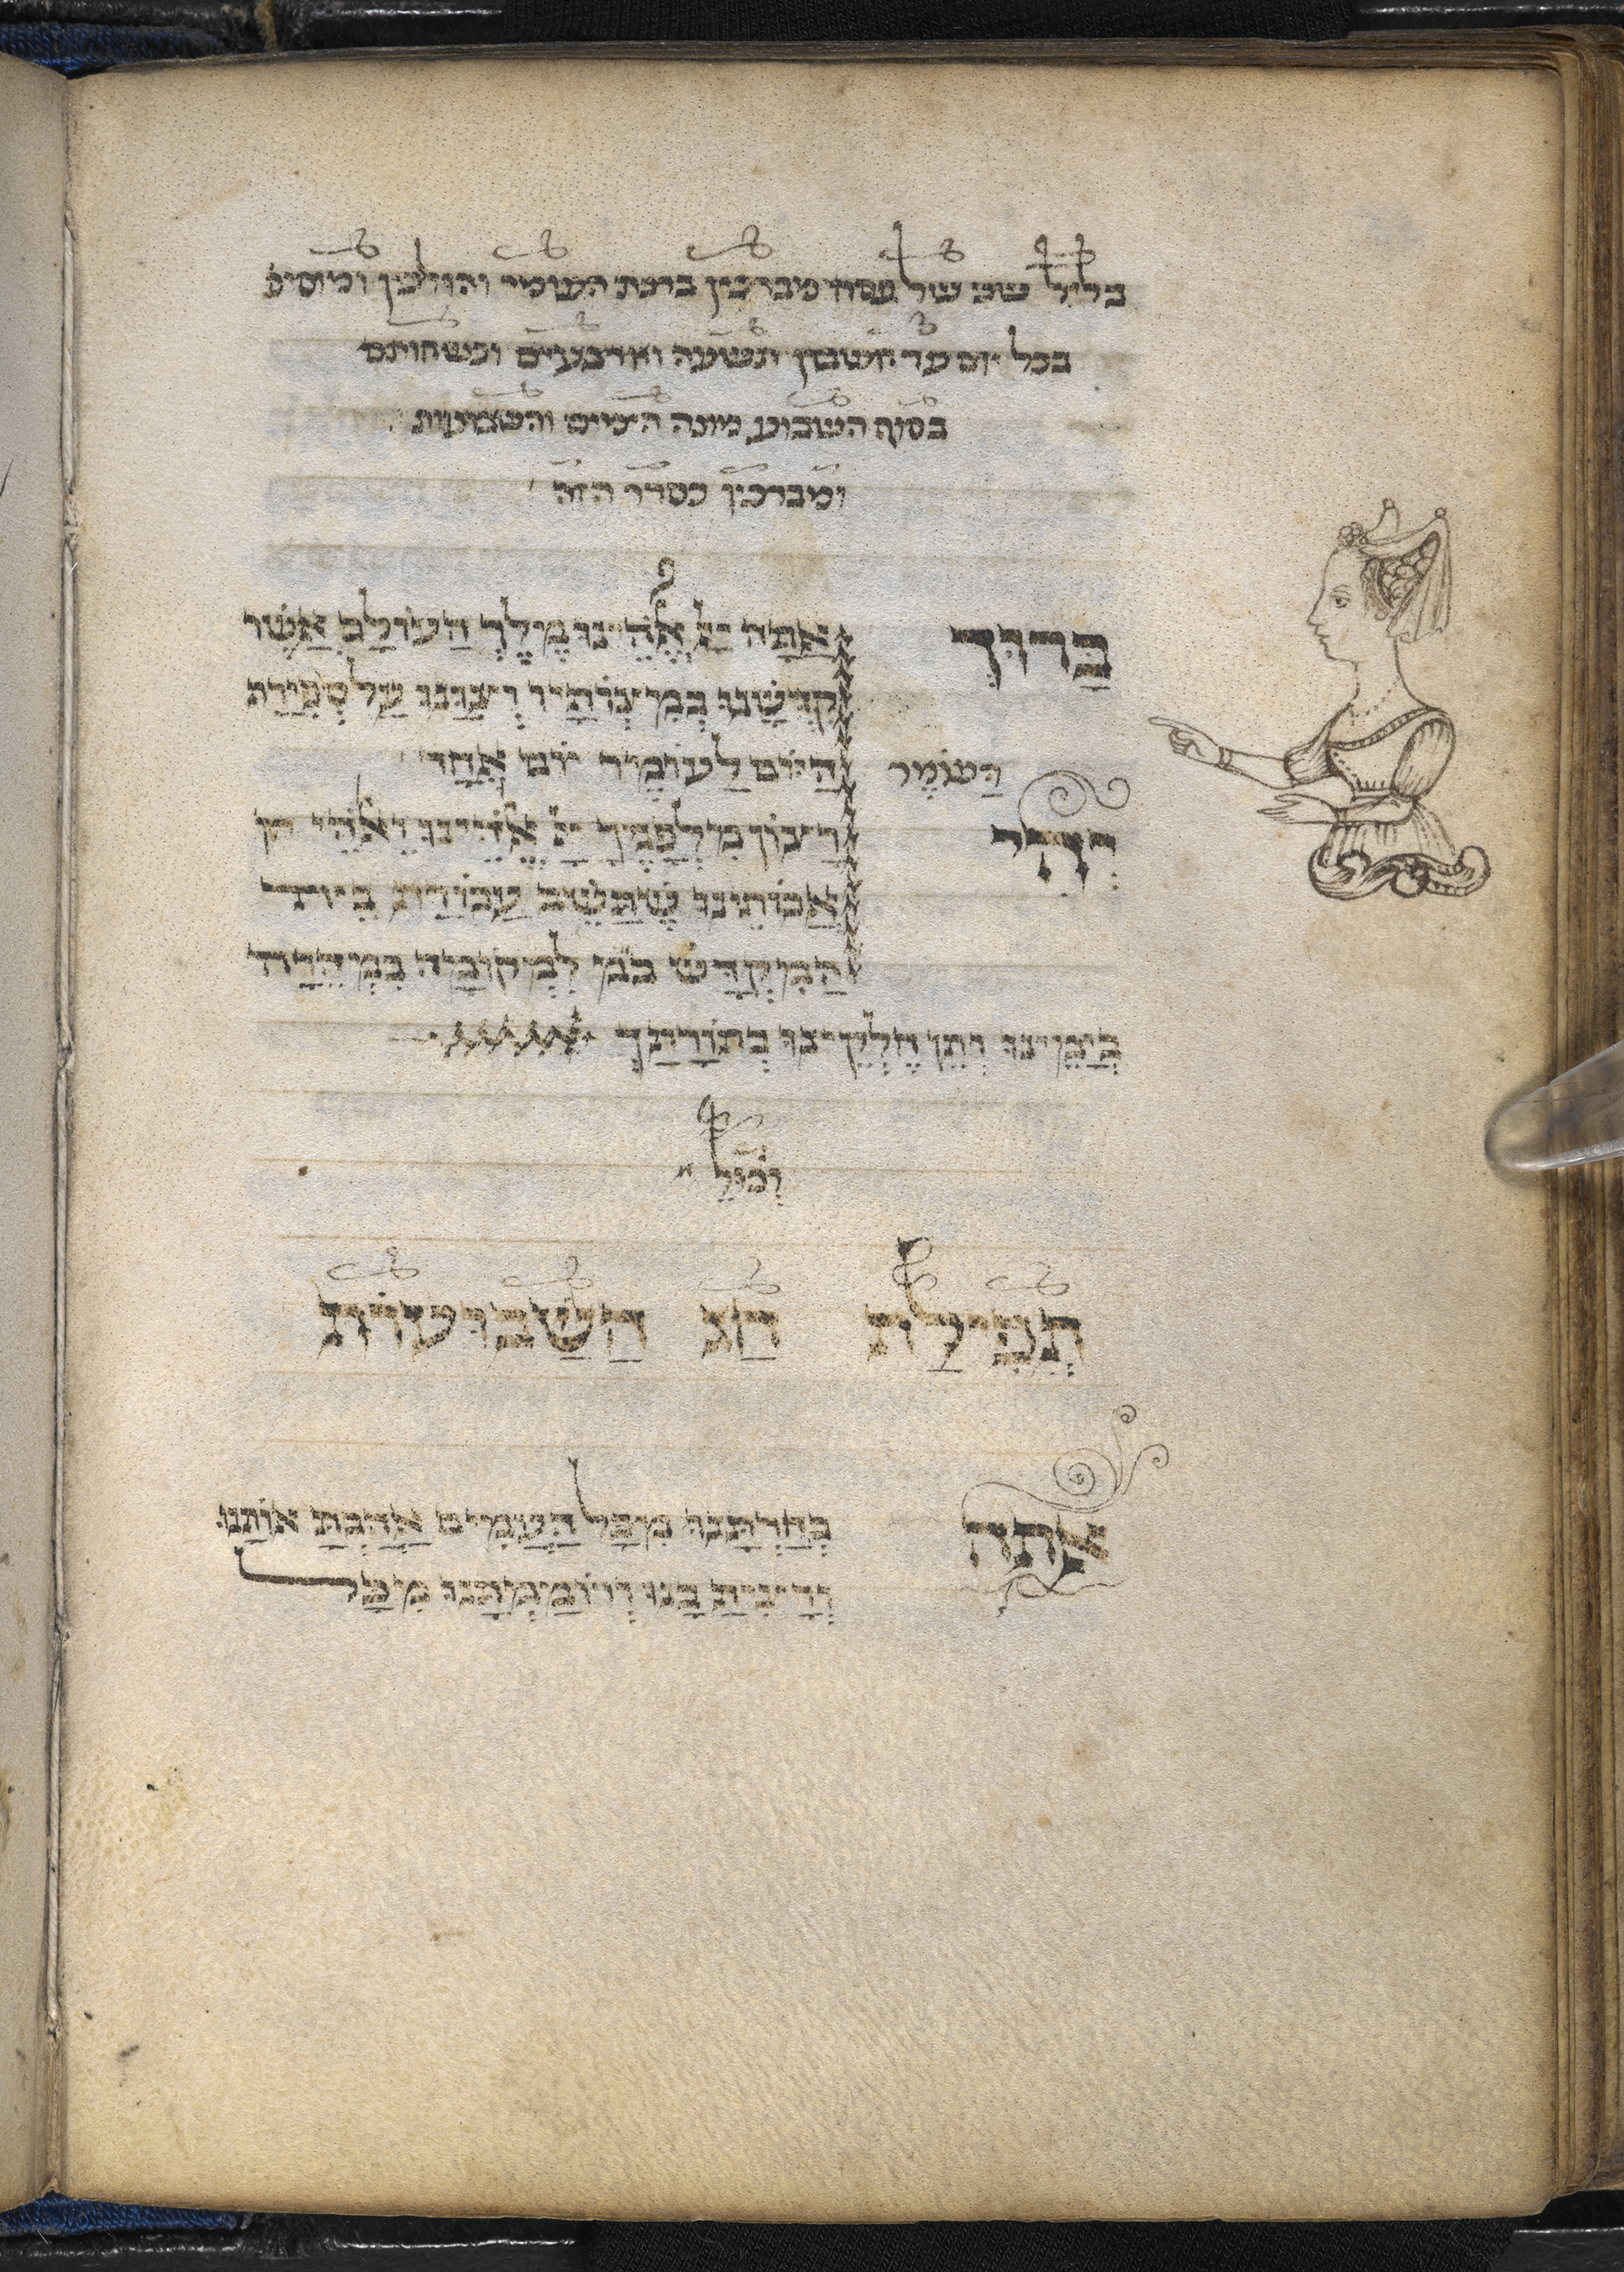 Illustration of a woman pointing to the text for the counting of the Omer, Italy, 1469 CE, Add MS 26957, Hebrew Manuscripts Digitisation Project, British Library